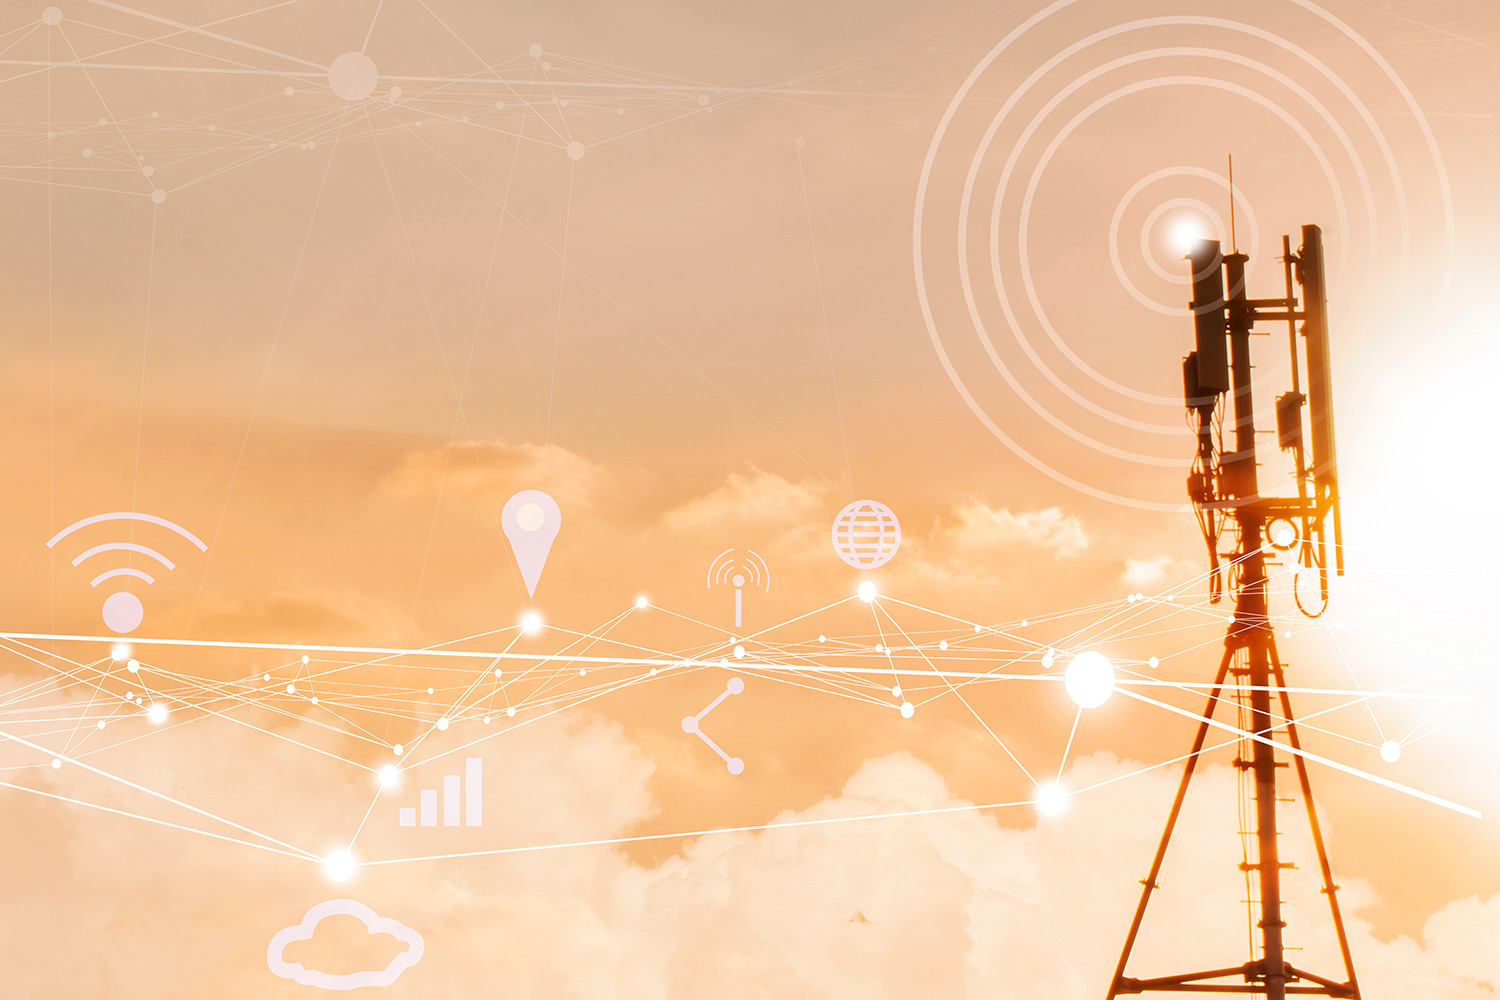 Thailand's satellite policy in supporting 5G industry